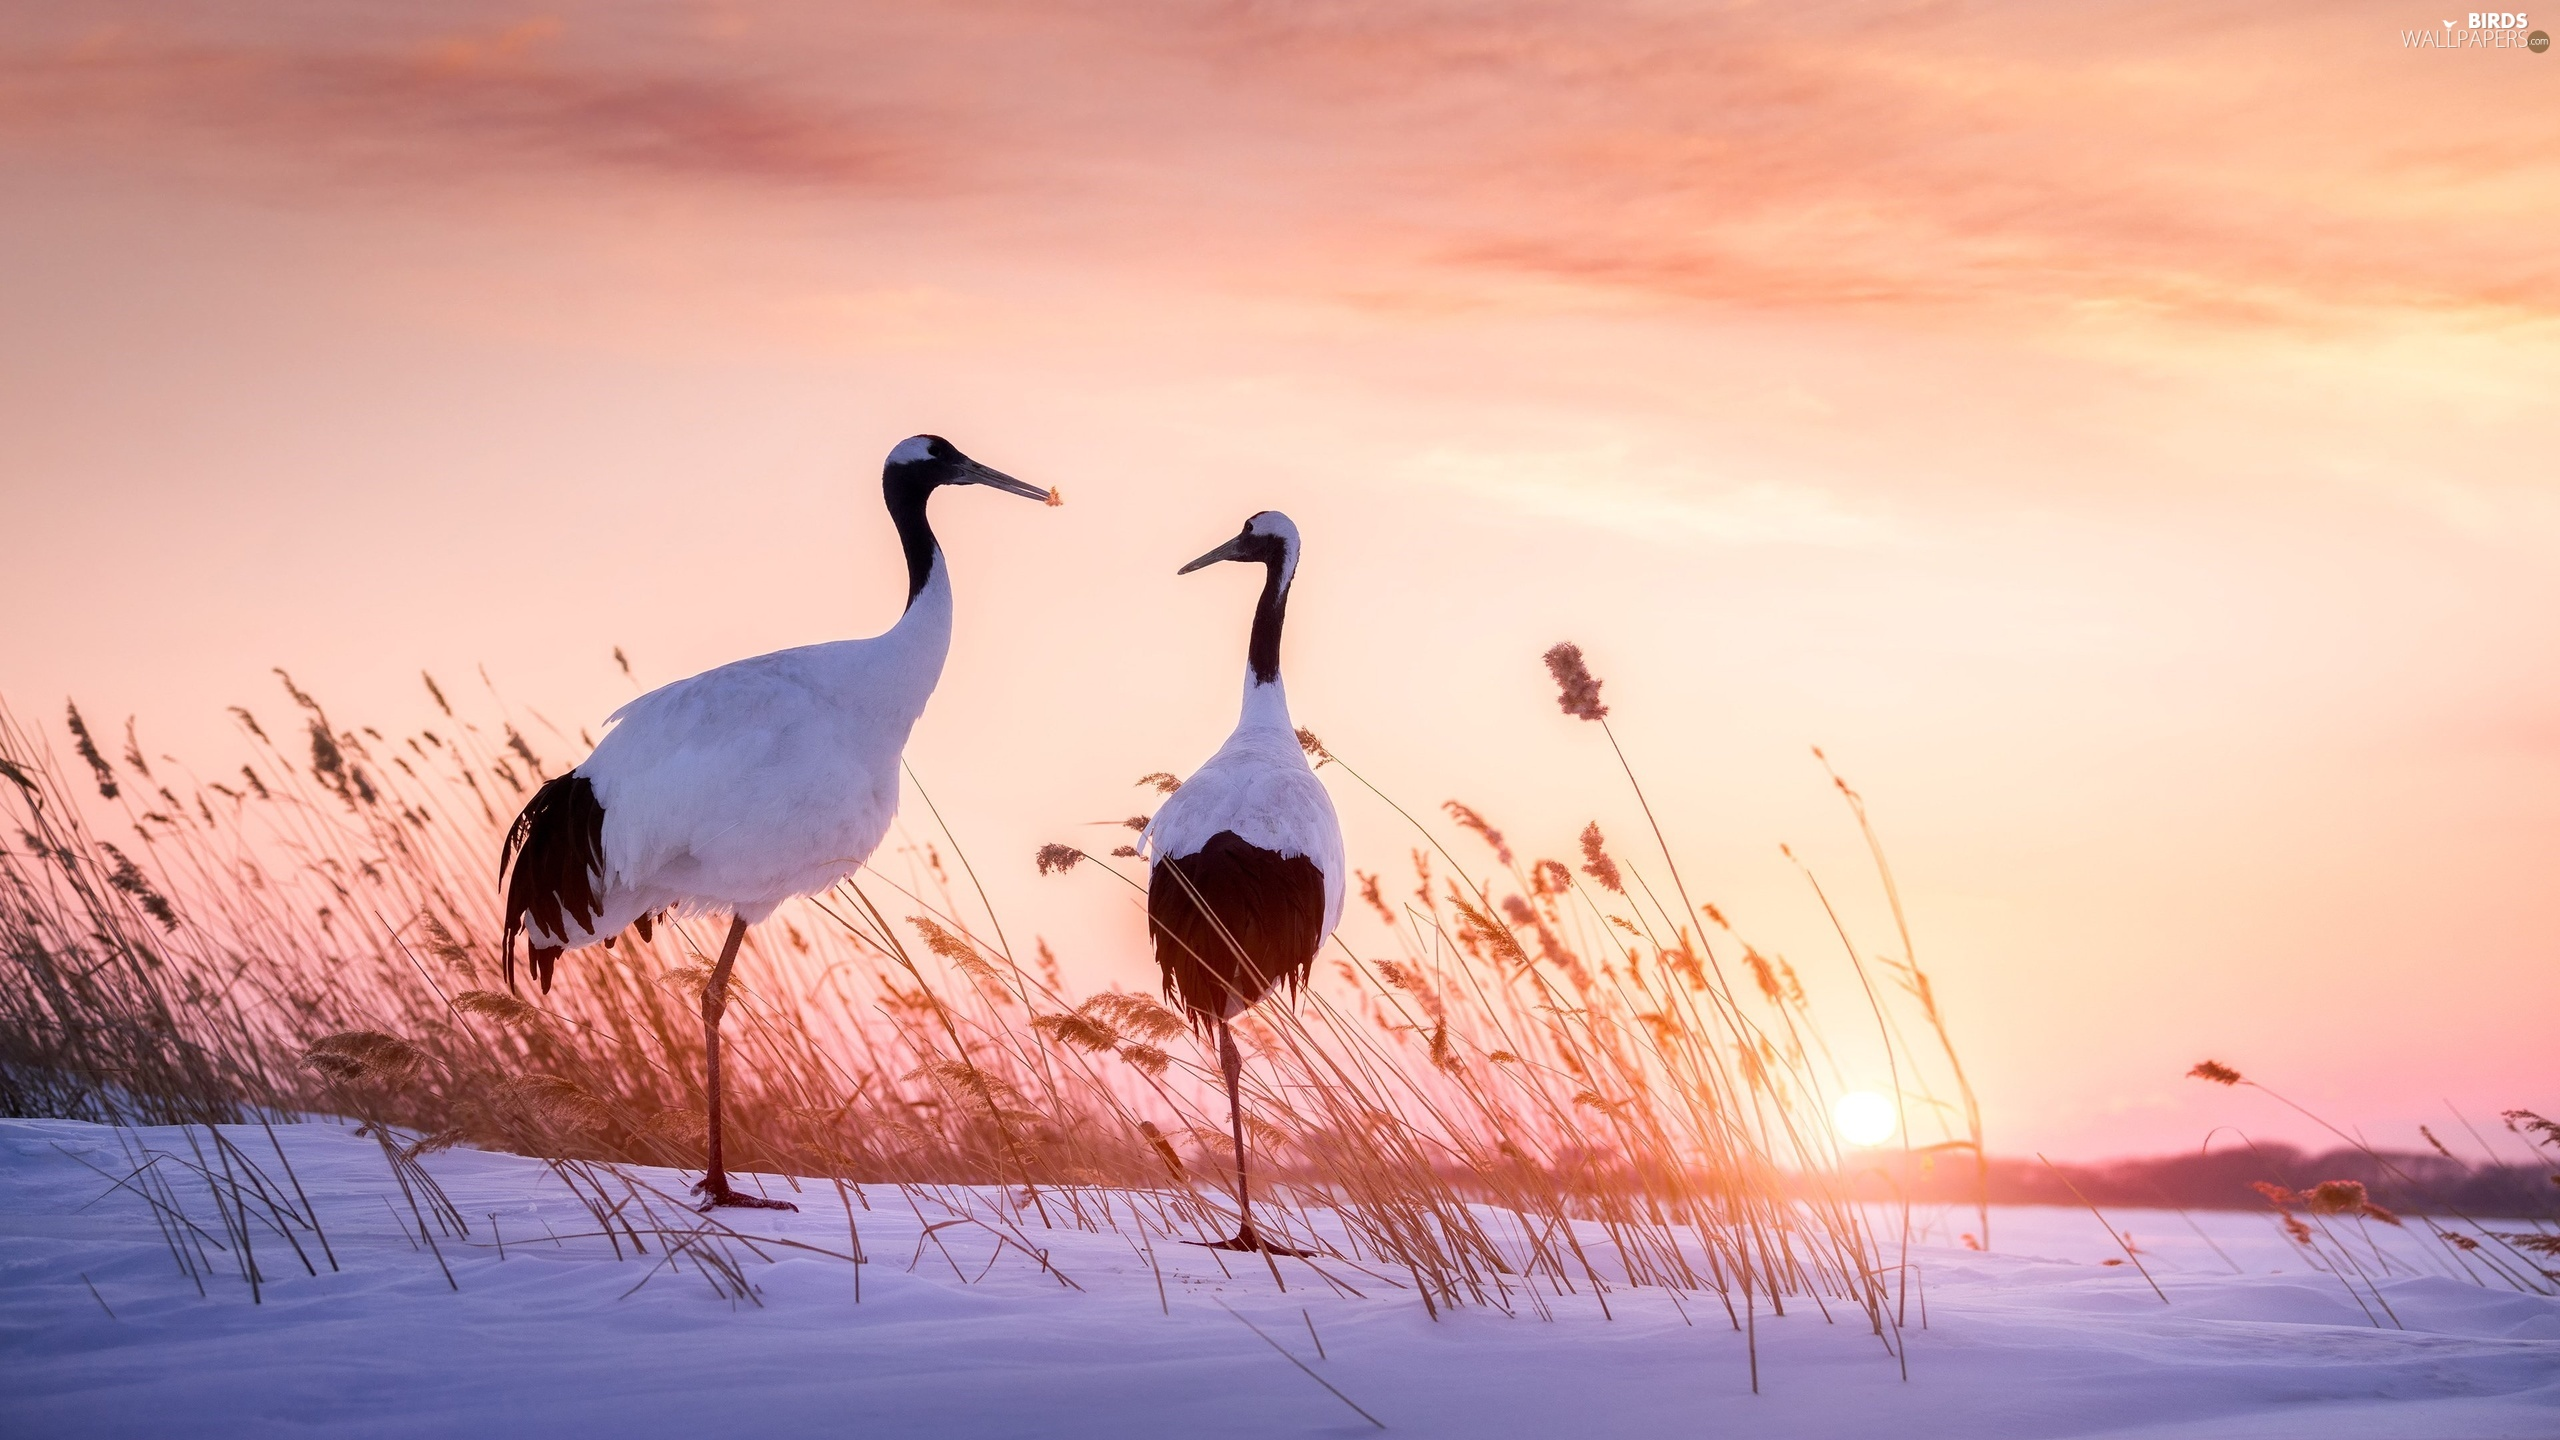 Manchurian Cranes, Two cars, snow, Cane, Great Sunsets, birds